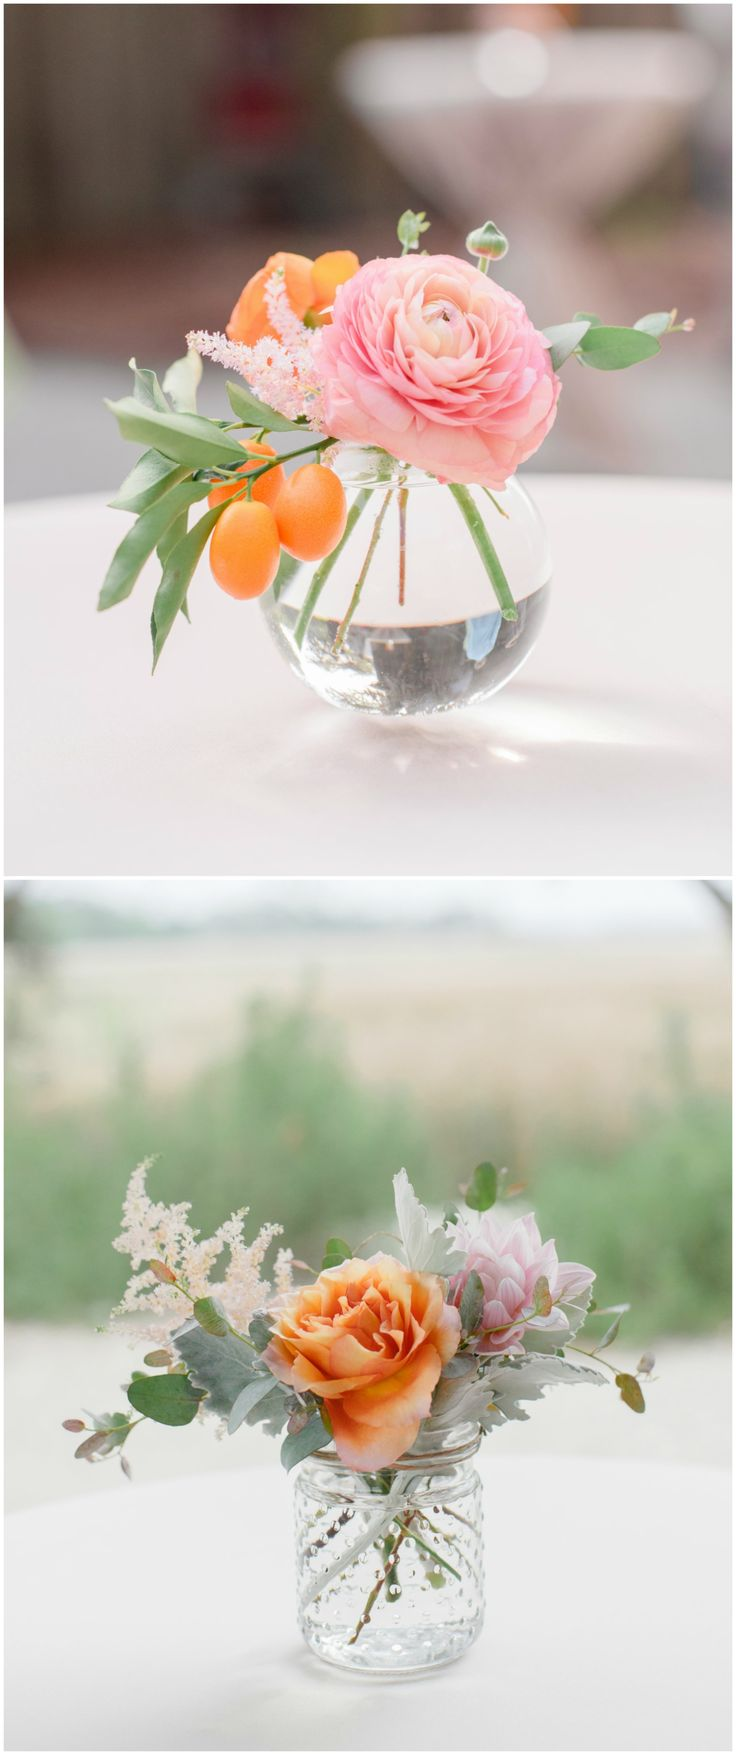 Best 400+ Wedding Centerpieces images on Pinterest | Flower ...